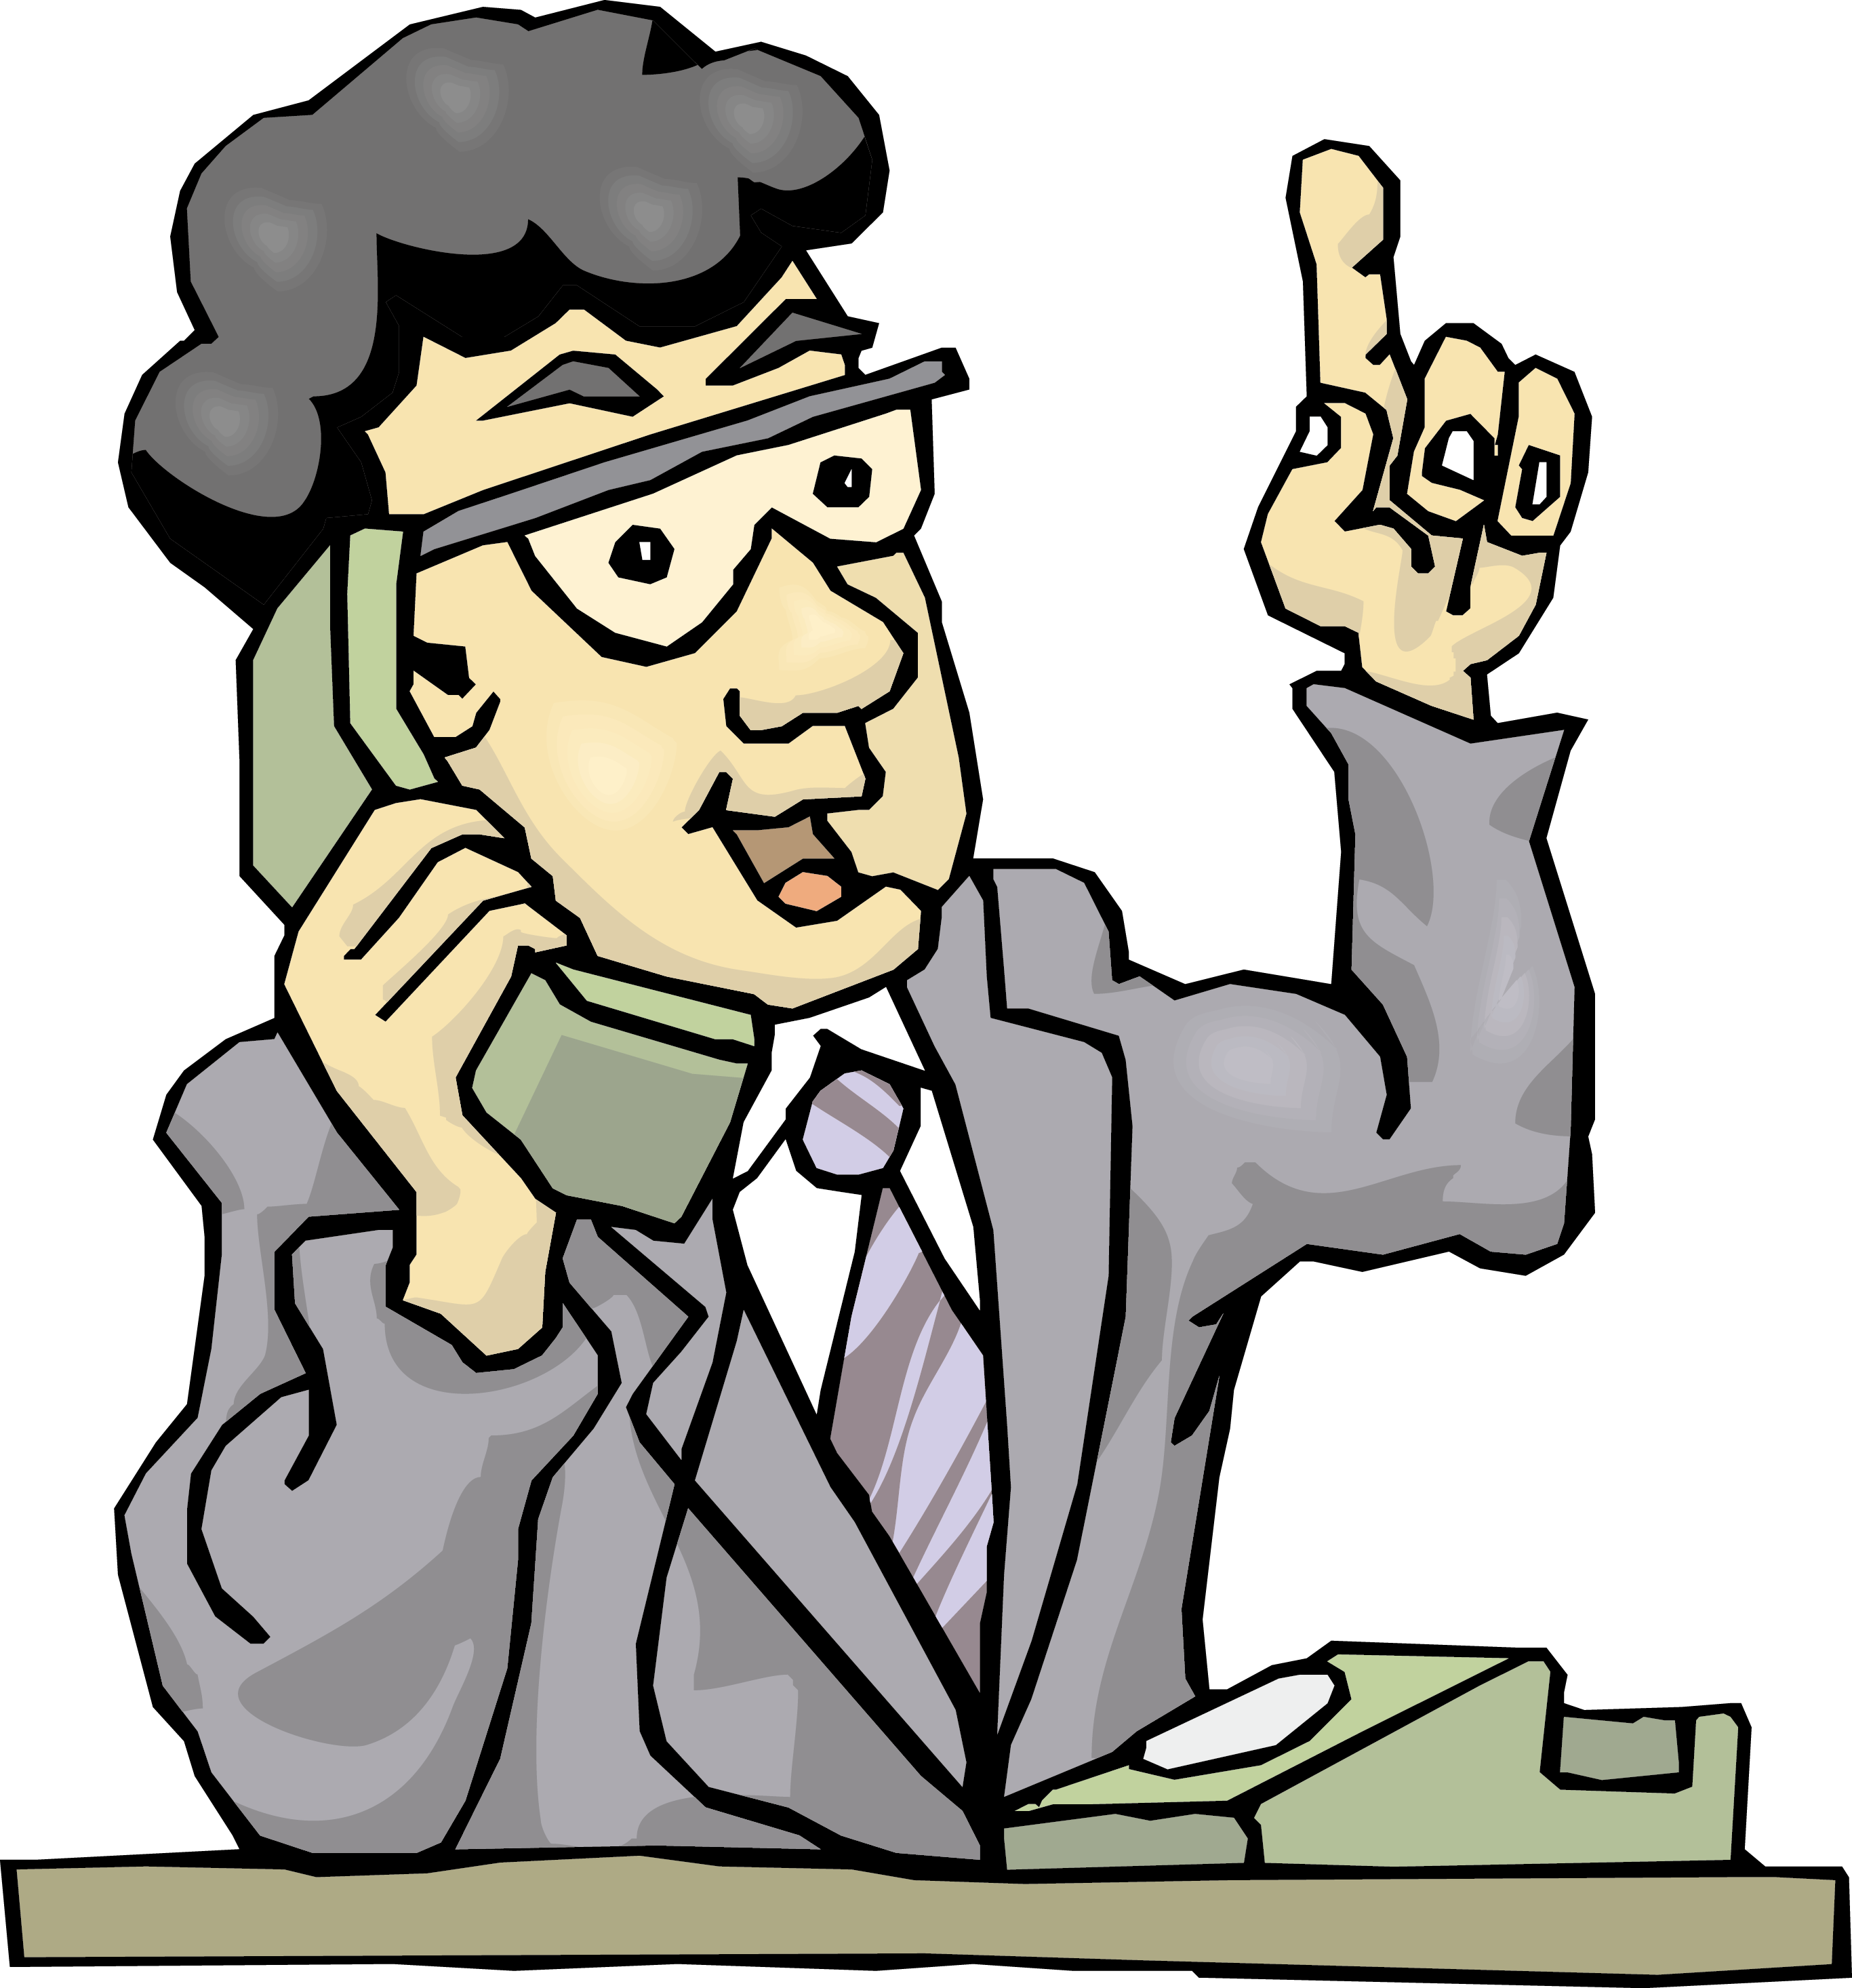 Telephone clipart answer phone. Customer service mobile call